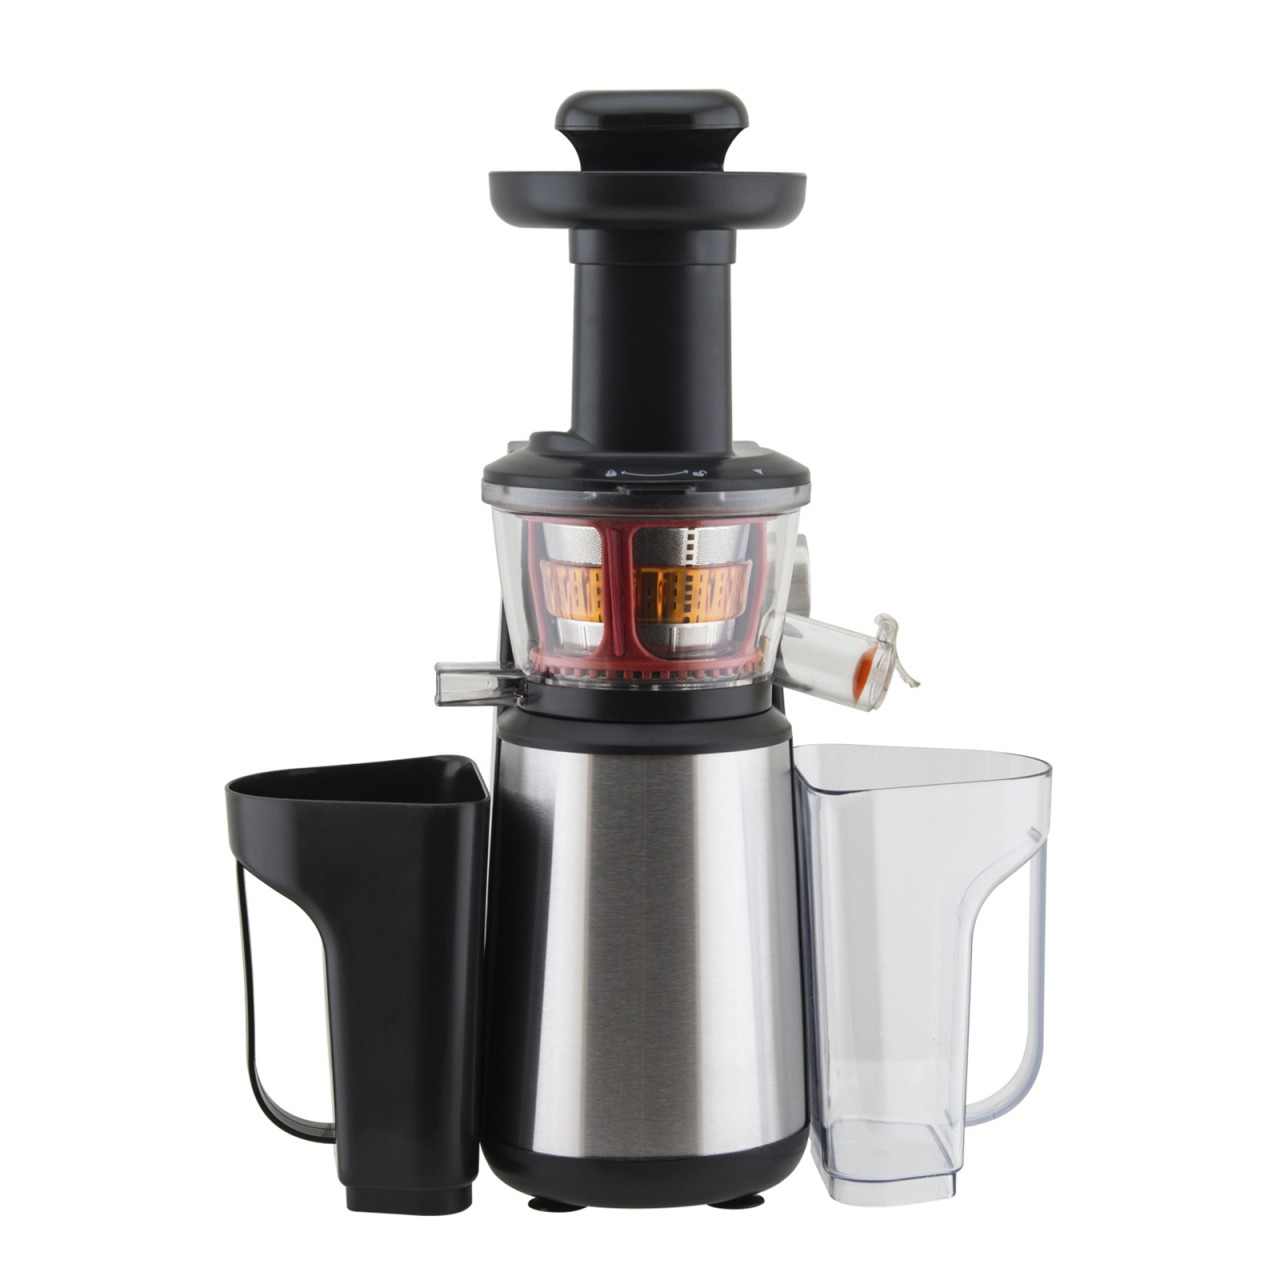 Power Juice extractor Slow Juicer Stainless steel 400 Watt H.koenig GSX12 eBay